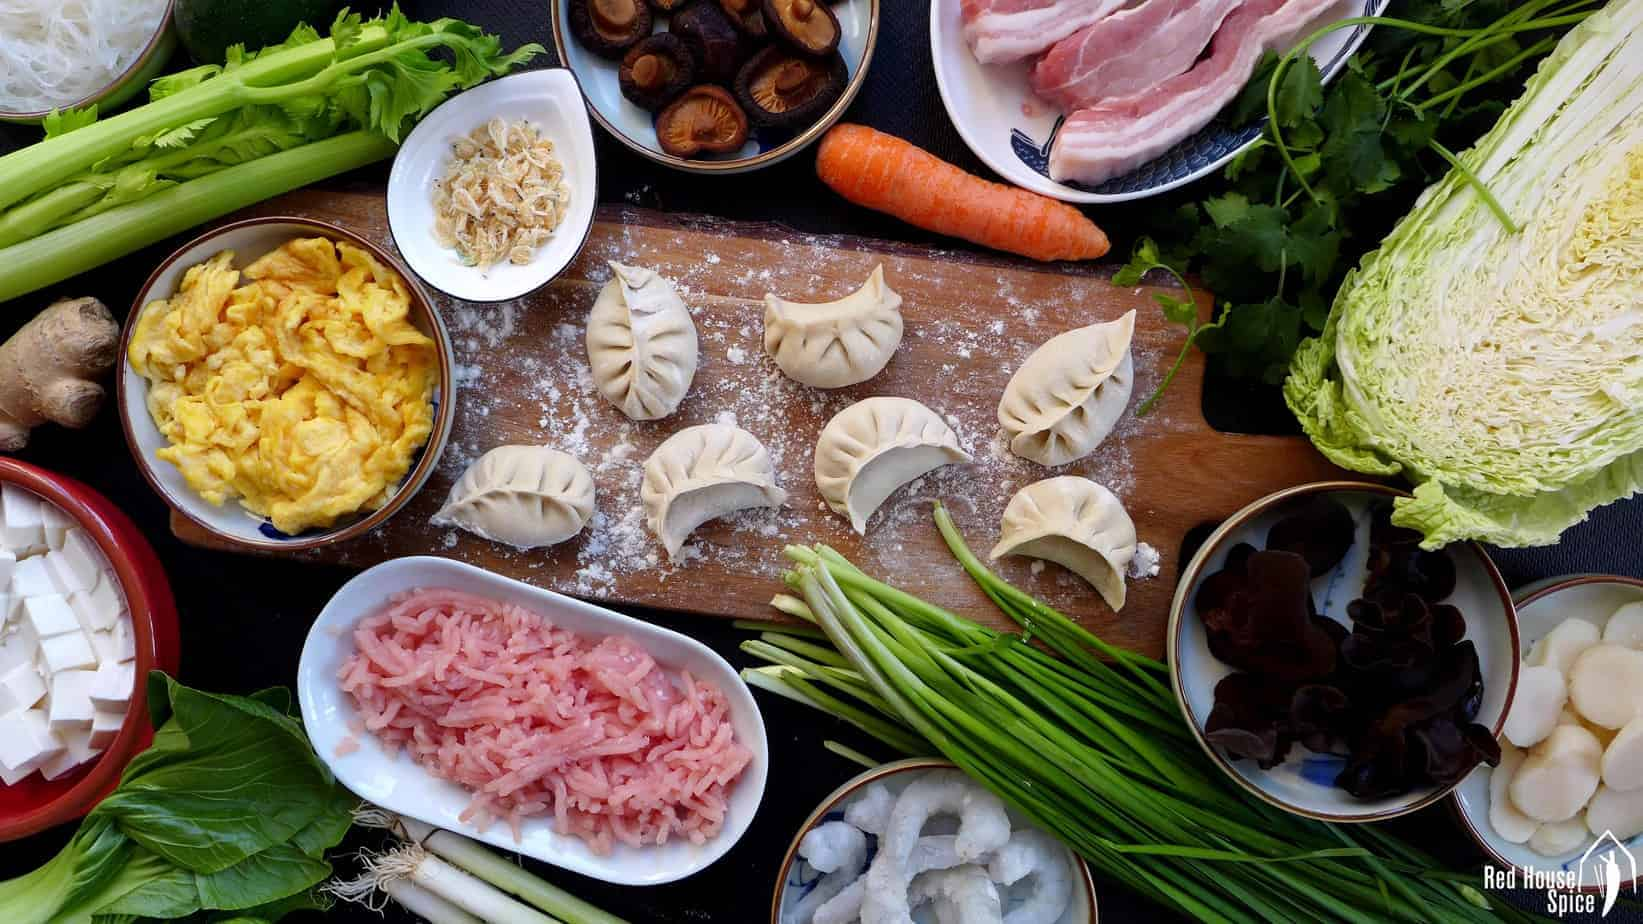 Dumplings surrounded by and raw ingredients for making dumpling fillings